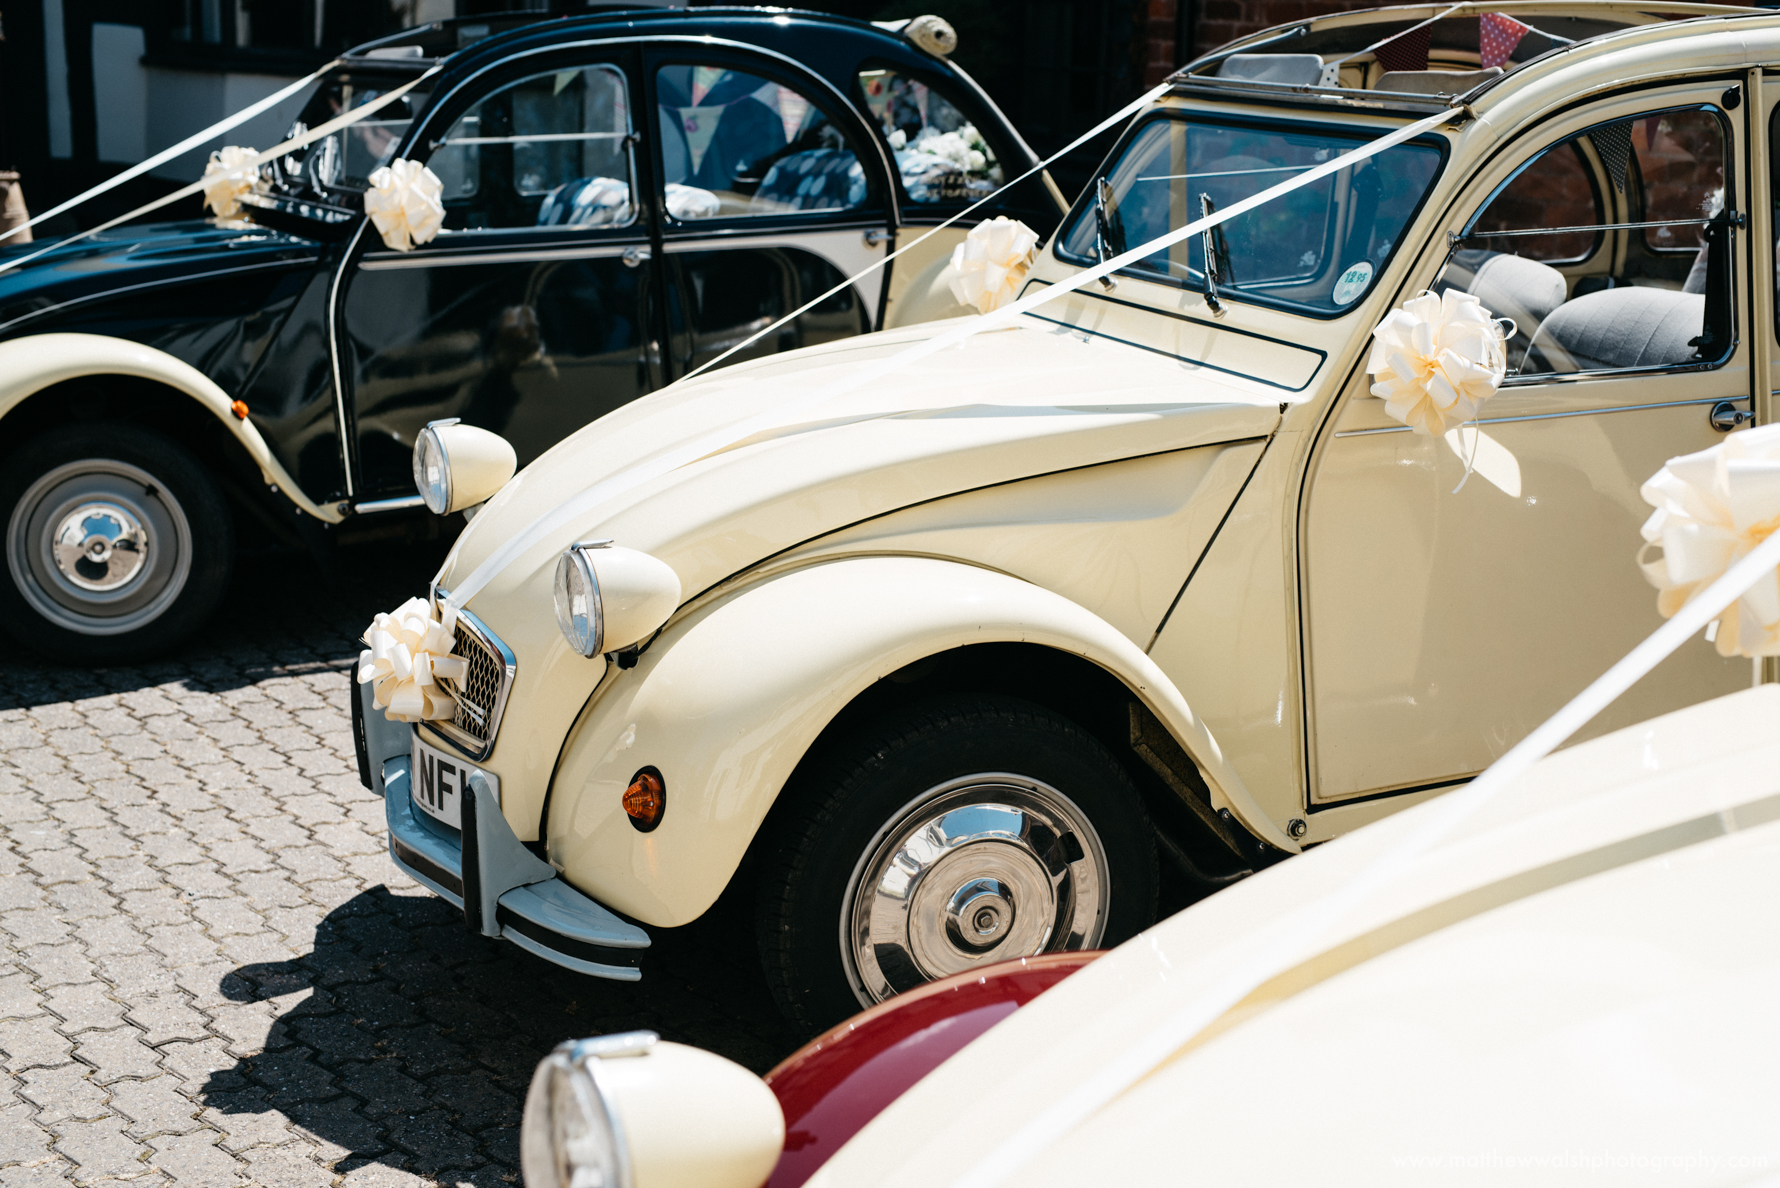 2cv Wedding cars ready to take the bridal party to the church